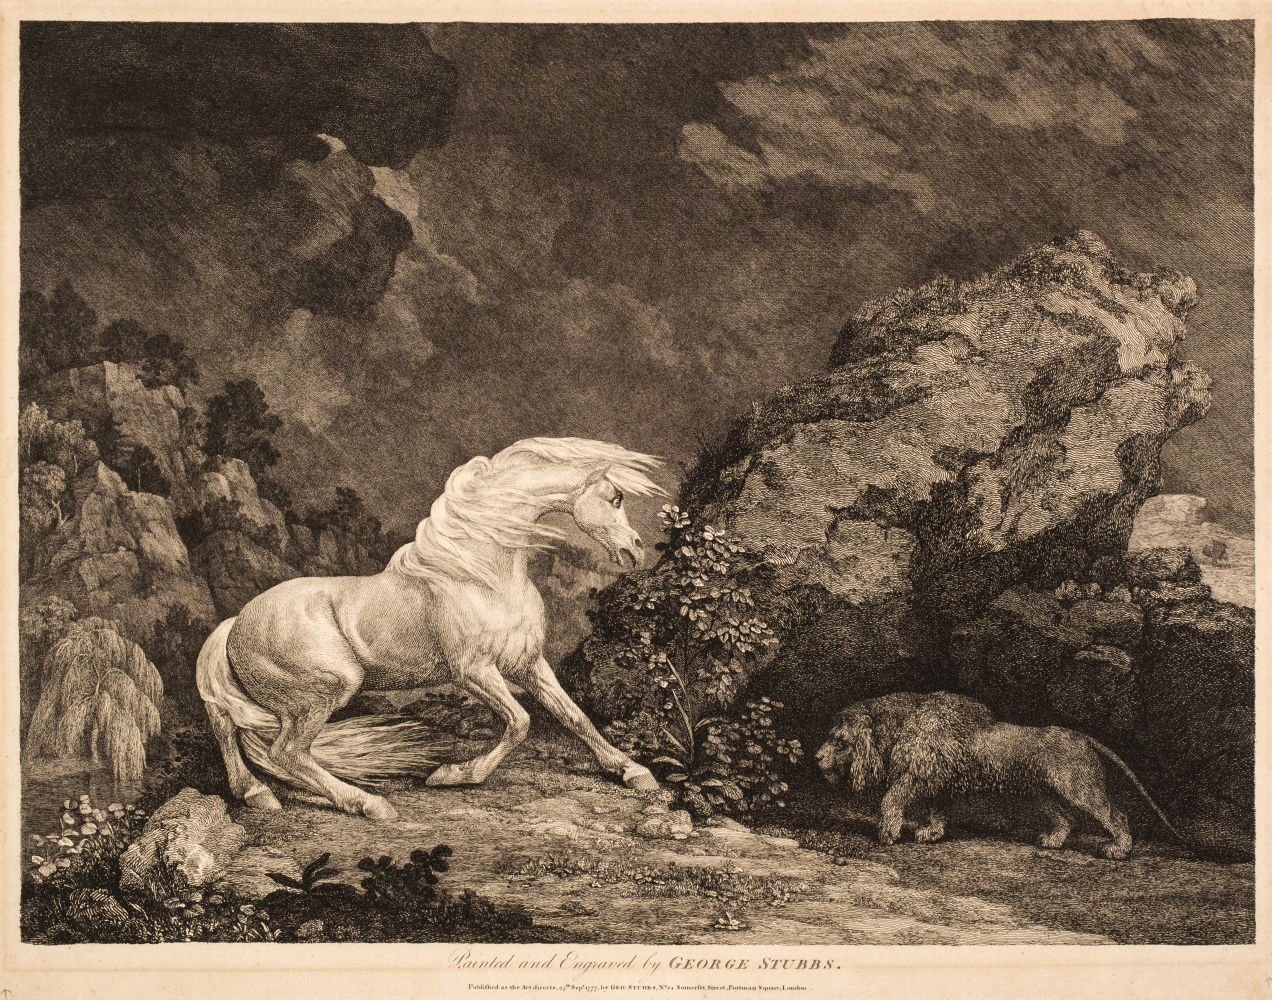 * Stubbs (George). A Horse Affrighted by a Lion, 1777